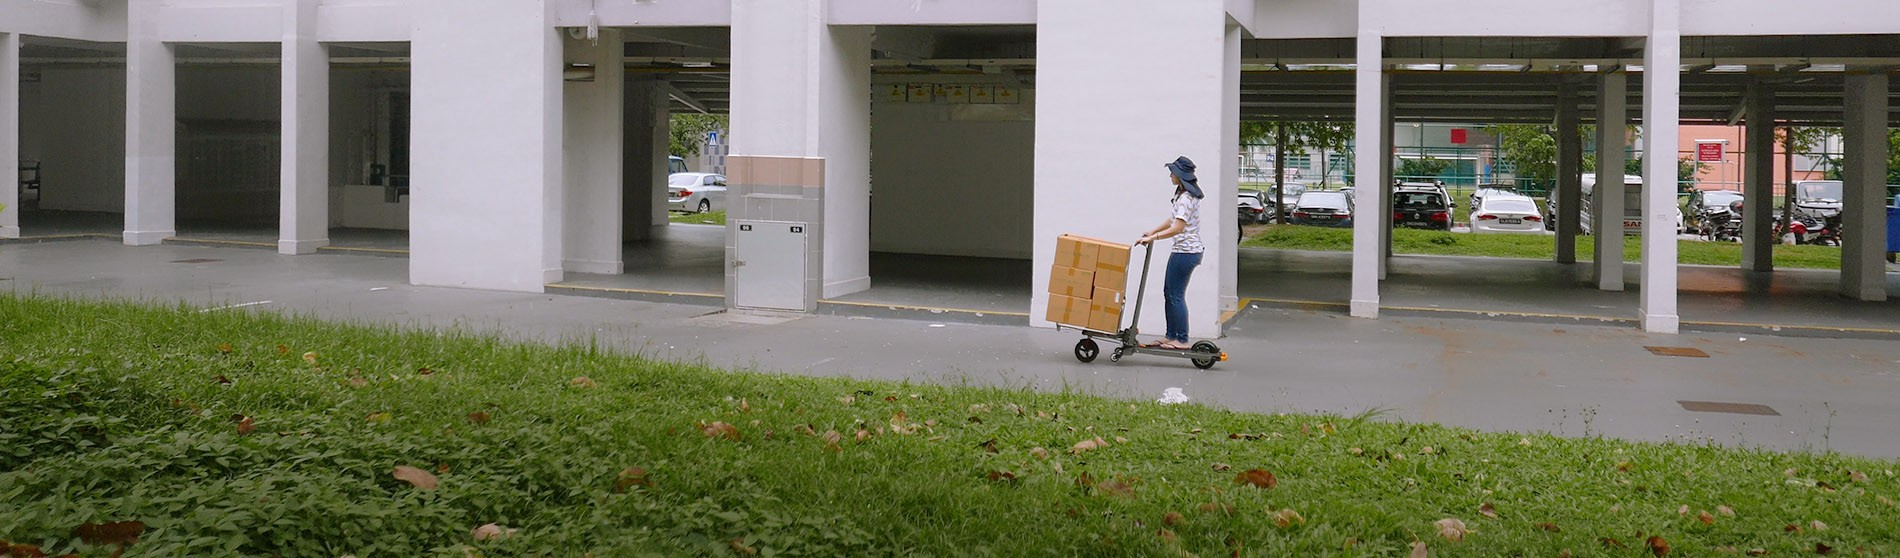 woman carrying out urban logistics delivery on cargo e-scooter